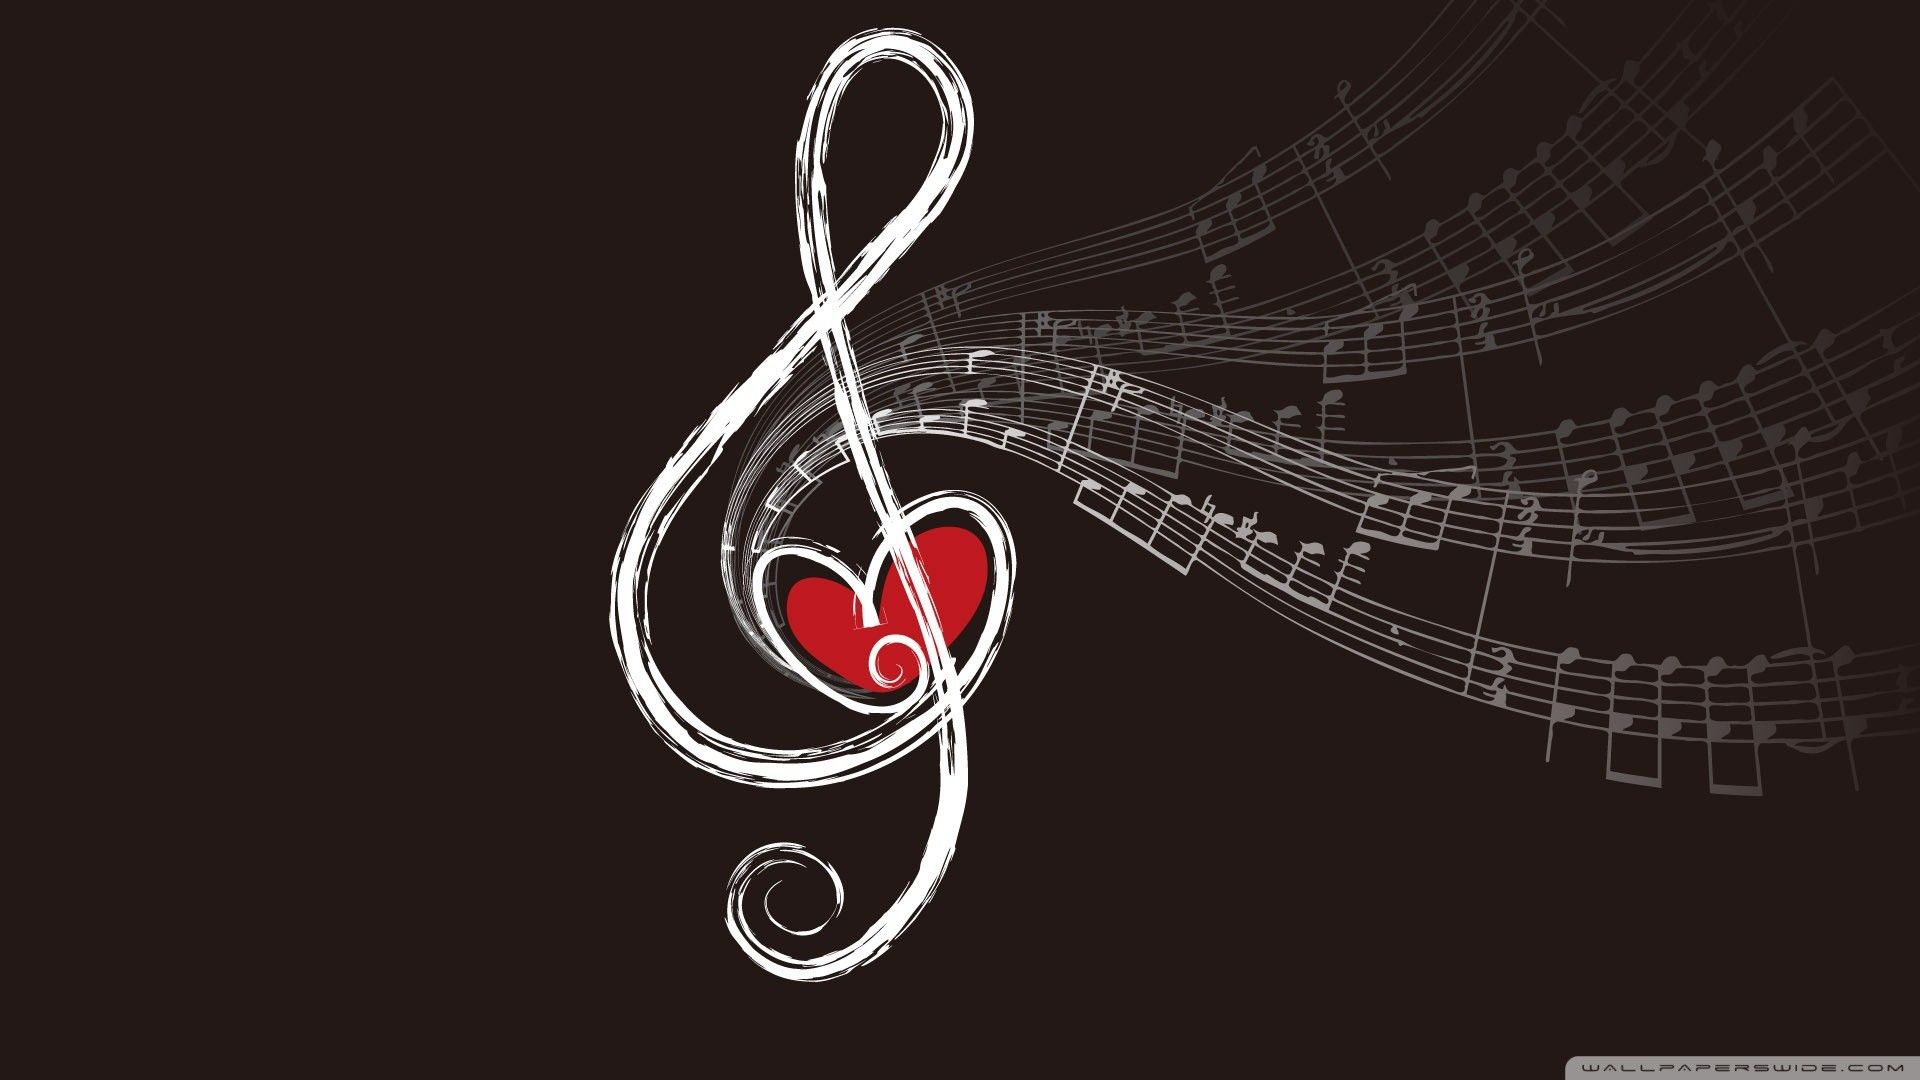 Download Wallpaper Music Painting - 787a2974f39c082687ea1d4601091667  Perfect Image Reference_73824.jpg